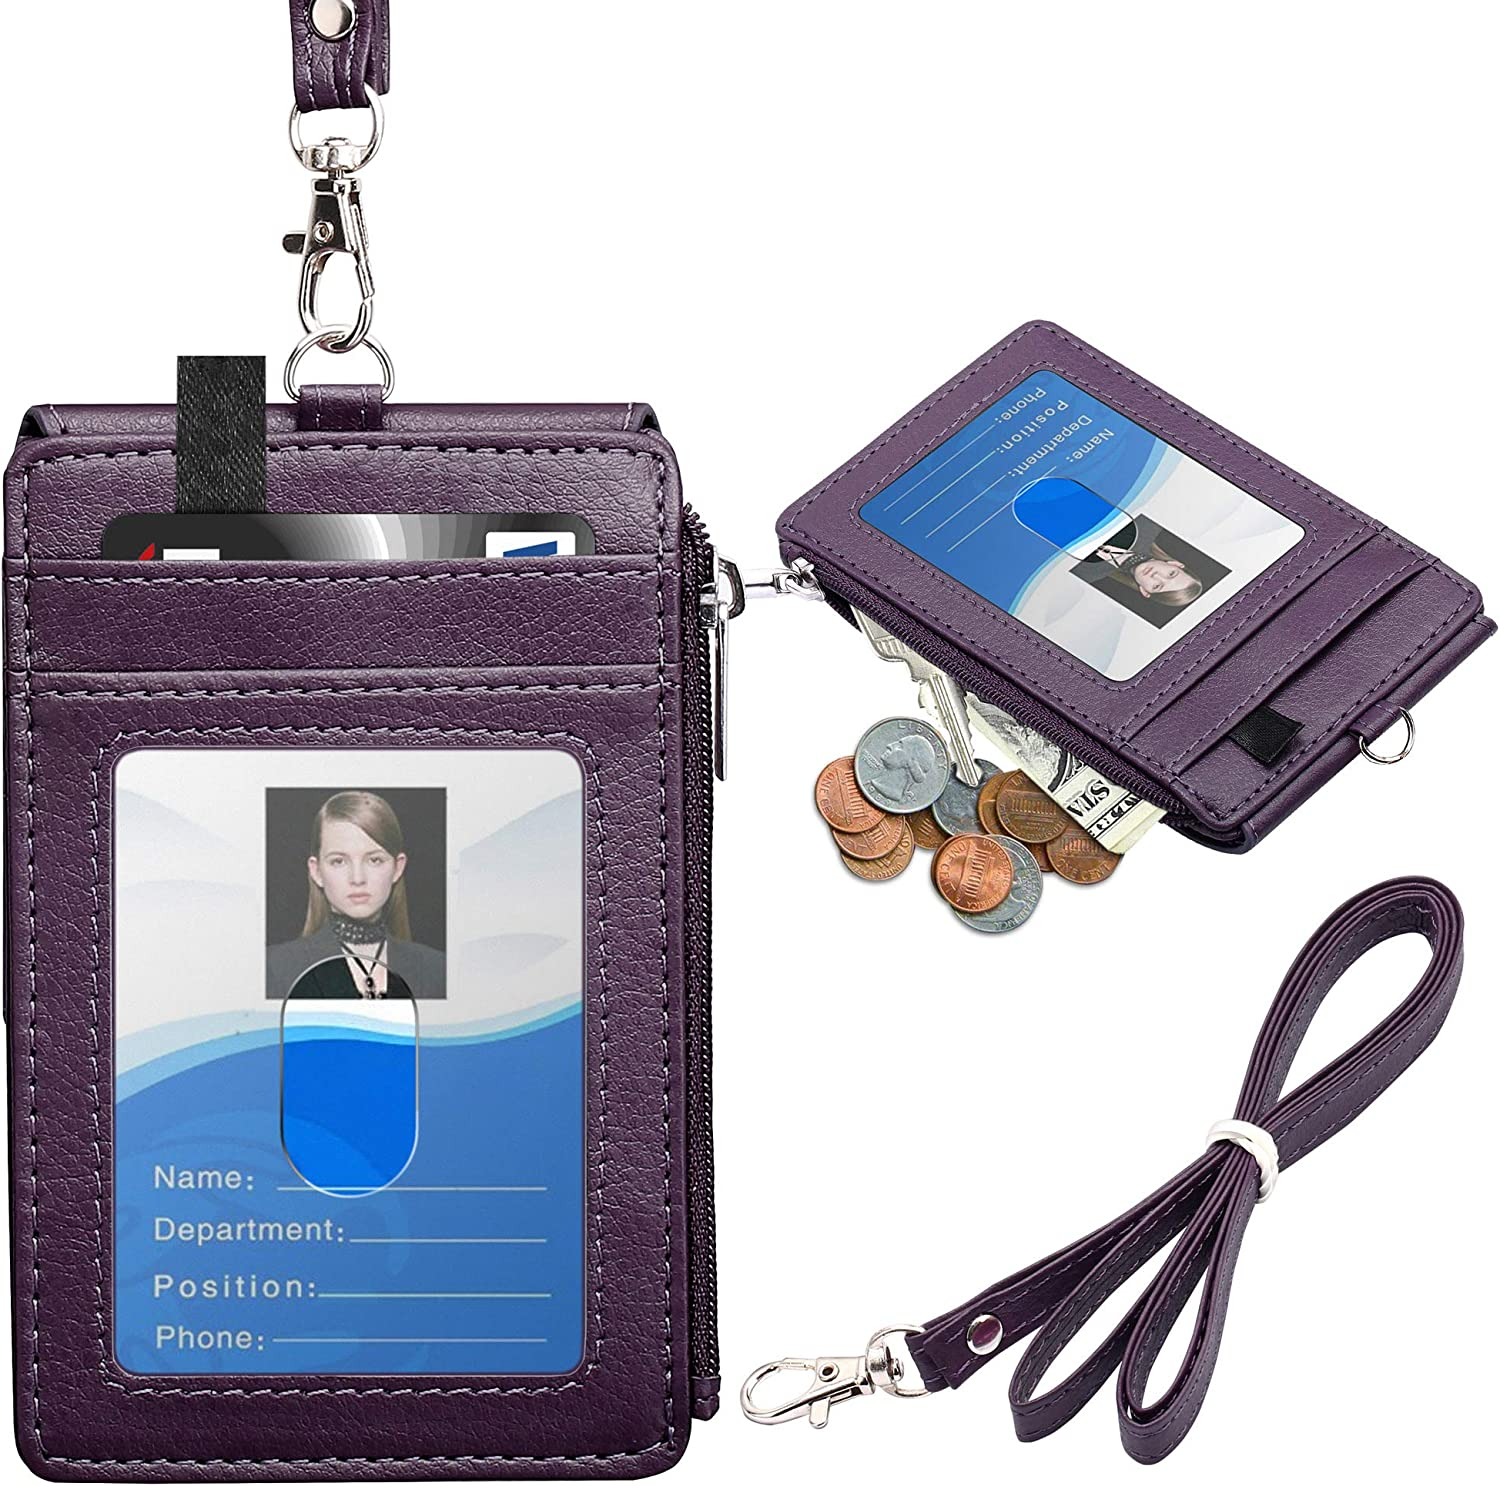 ELV Badge Holder with Zipper, PU Leather ID Badge Card Holder Wallet with 5 Card Slots, 1 Side RFID Blocking Pocket and 20 inch Neck Lanyard Strap for Offices ID, School ID, Driver Licence (Purple)